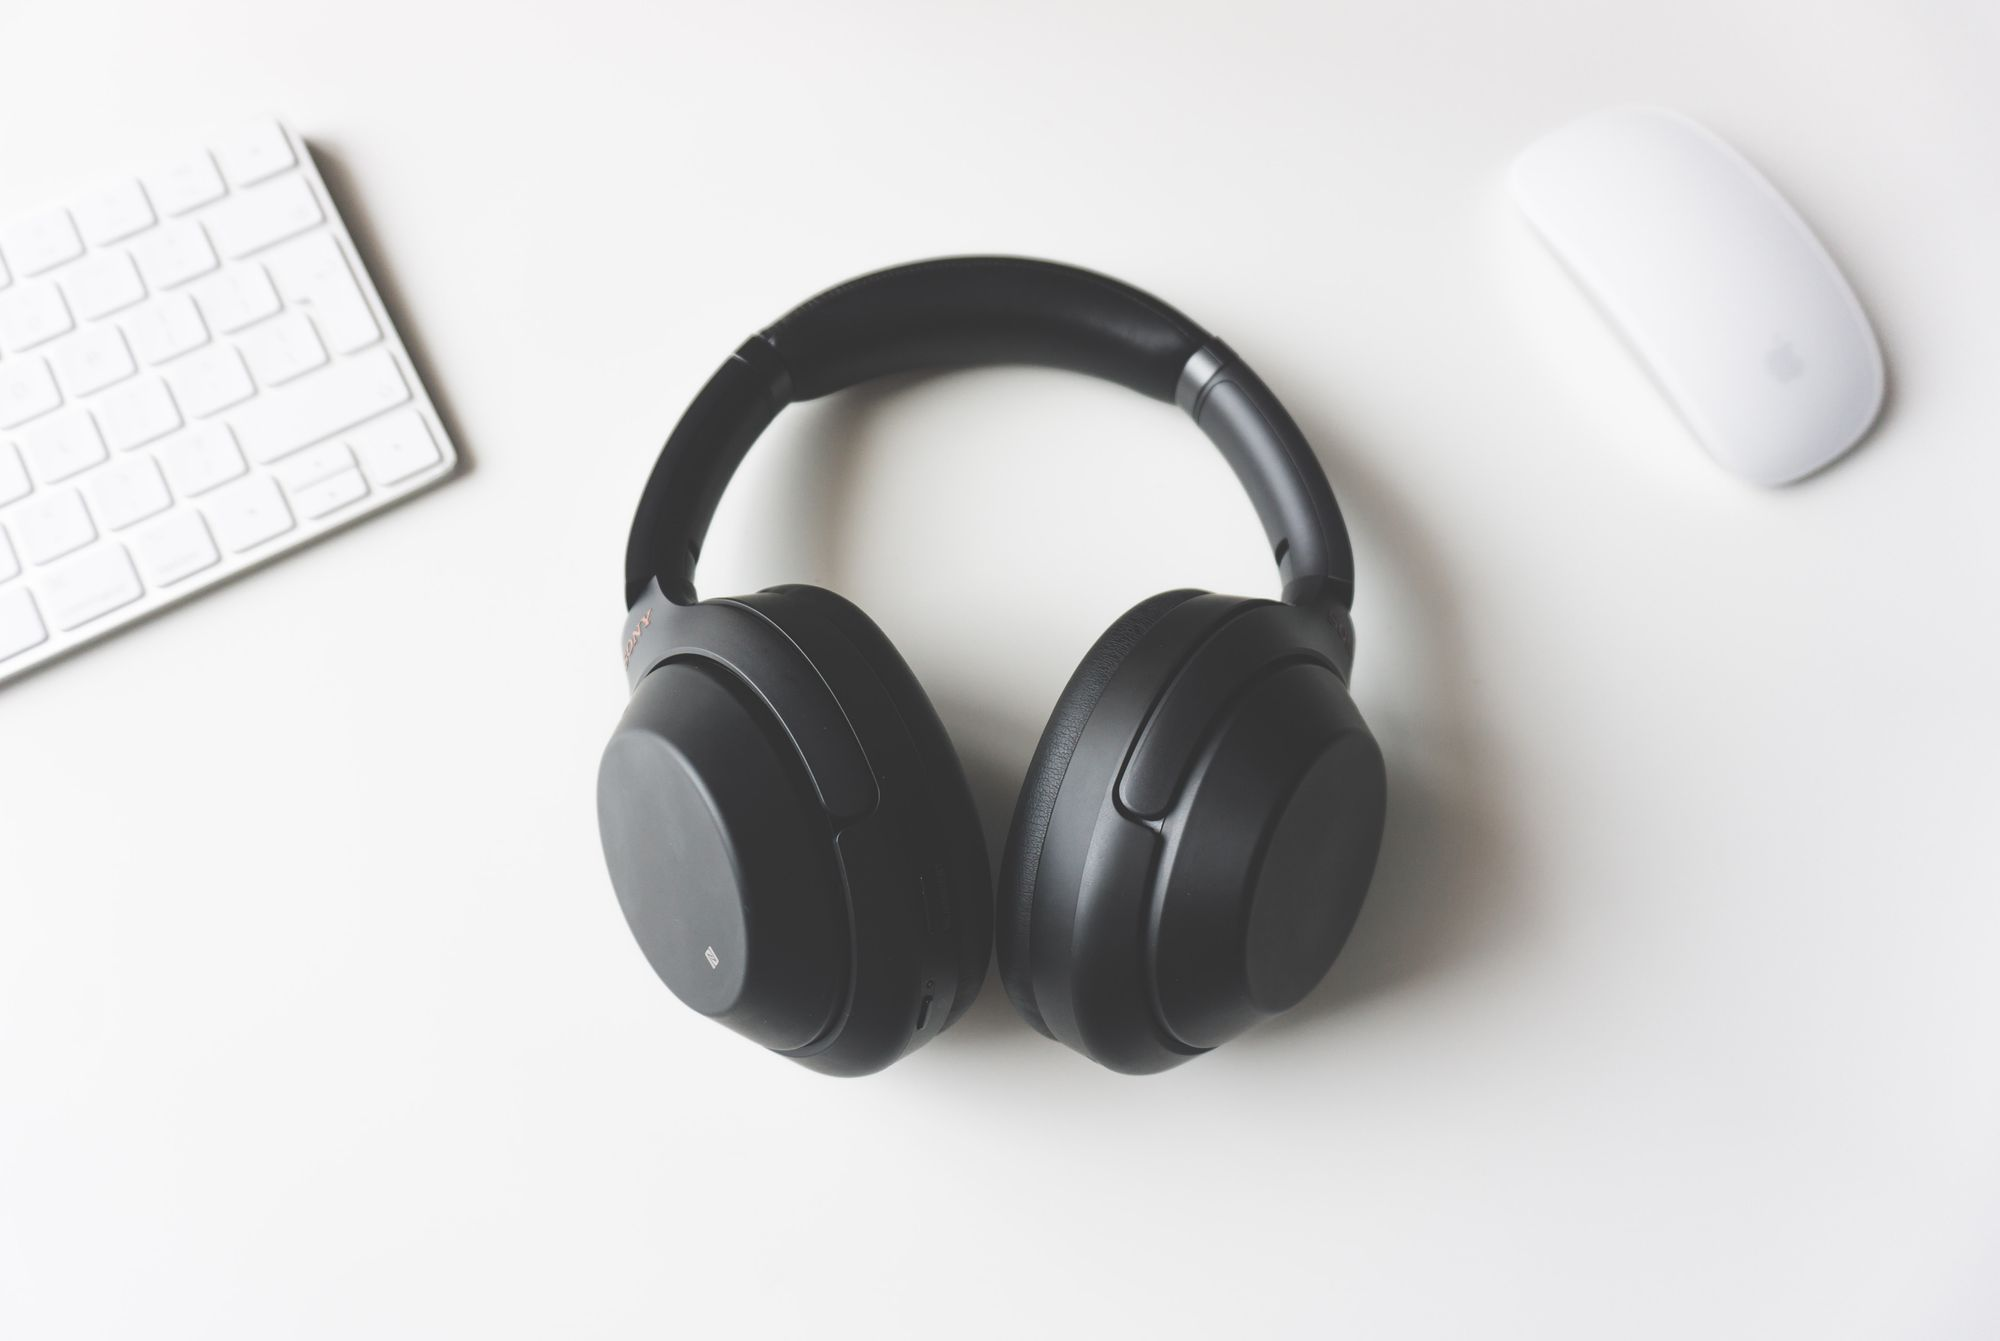 Best Headphones For Remote Work